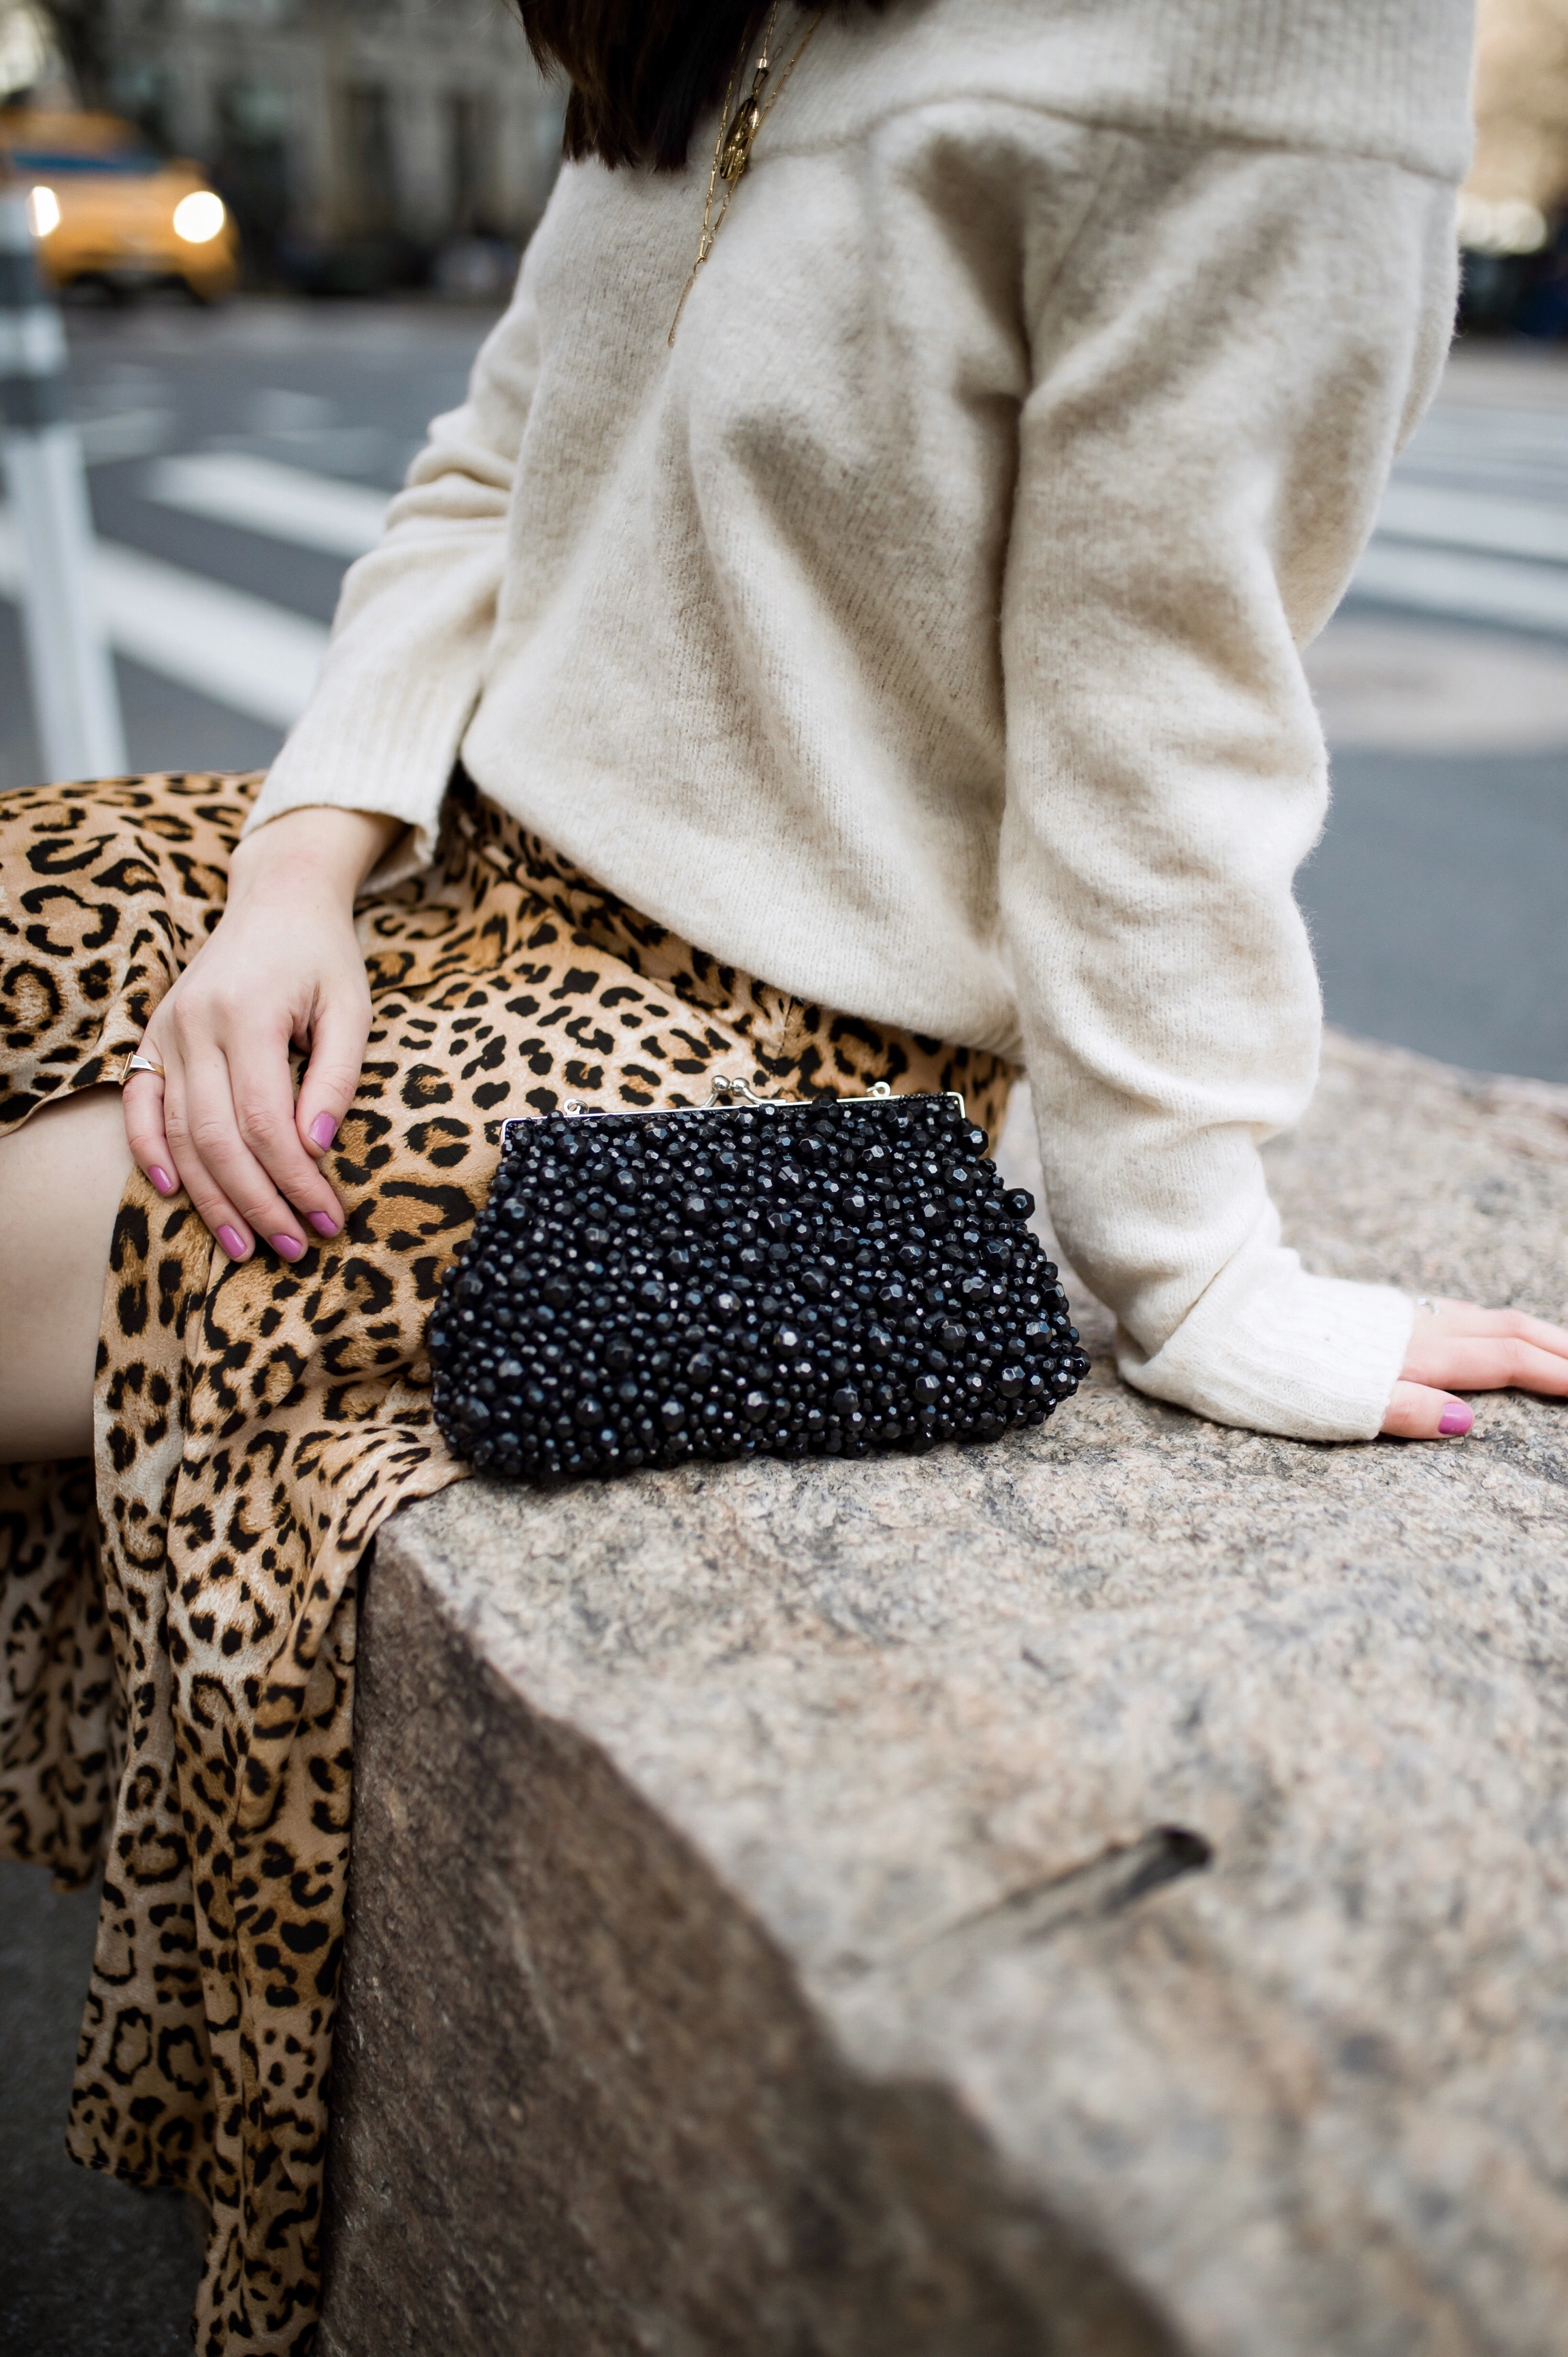 The Instagram Likes Debate Leopard Midi Skirt Beige Sweater Esther Santer Fashion Blog NYC Street Style Blogger Outfit OOTD Trendy Shopping Girl What Wear H&M Zara Pearl Barrettes Hair Clips Accessories Sandals Mules Bag Beaded Clutch Spring Necklaces.jpg